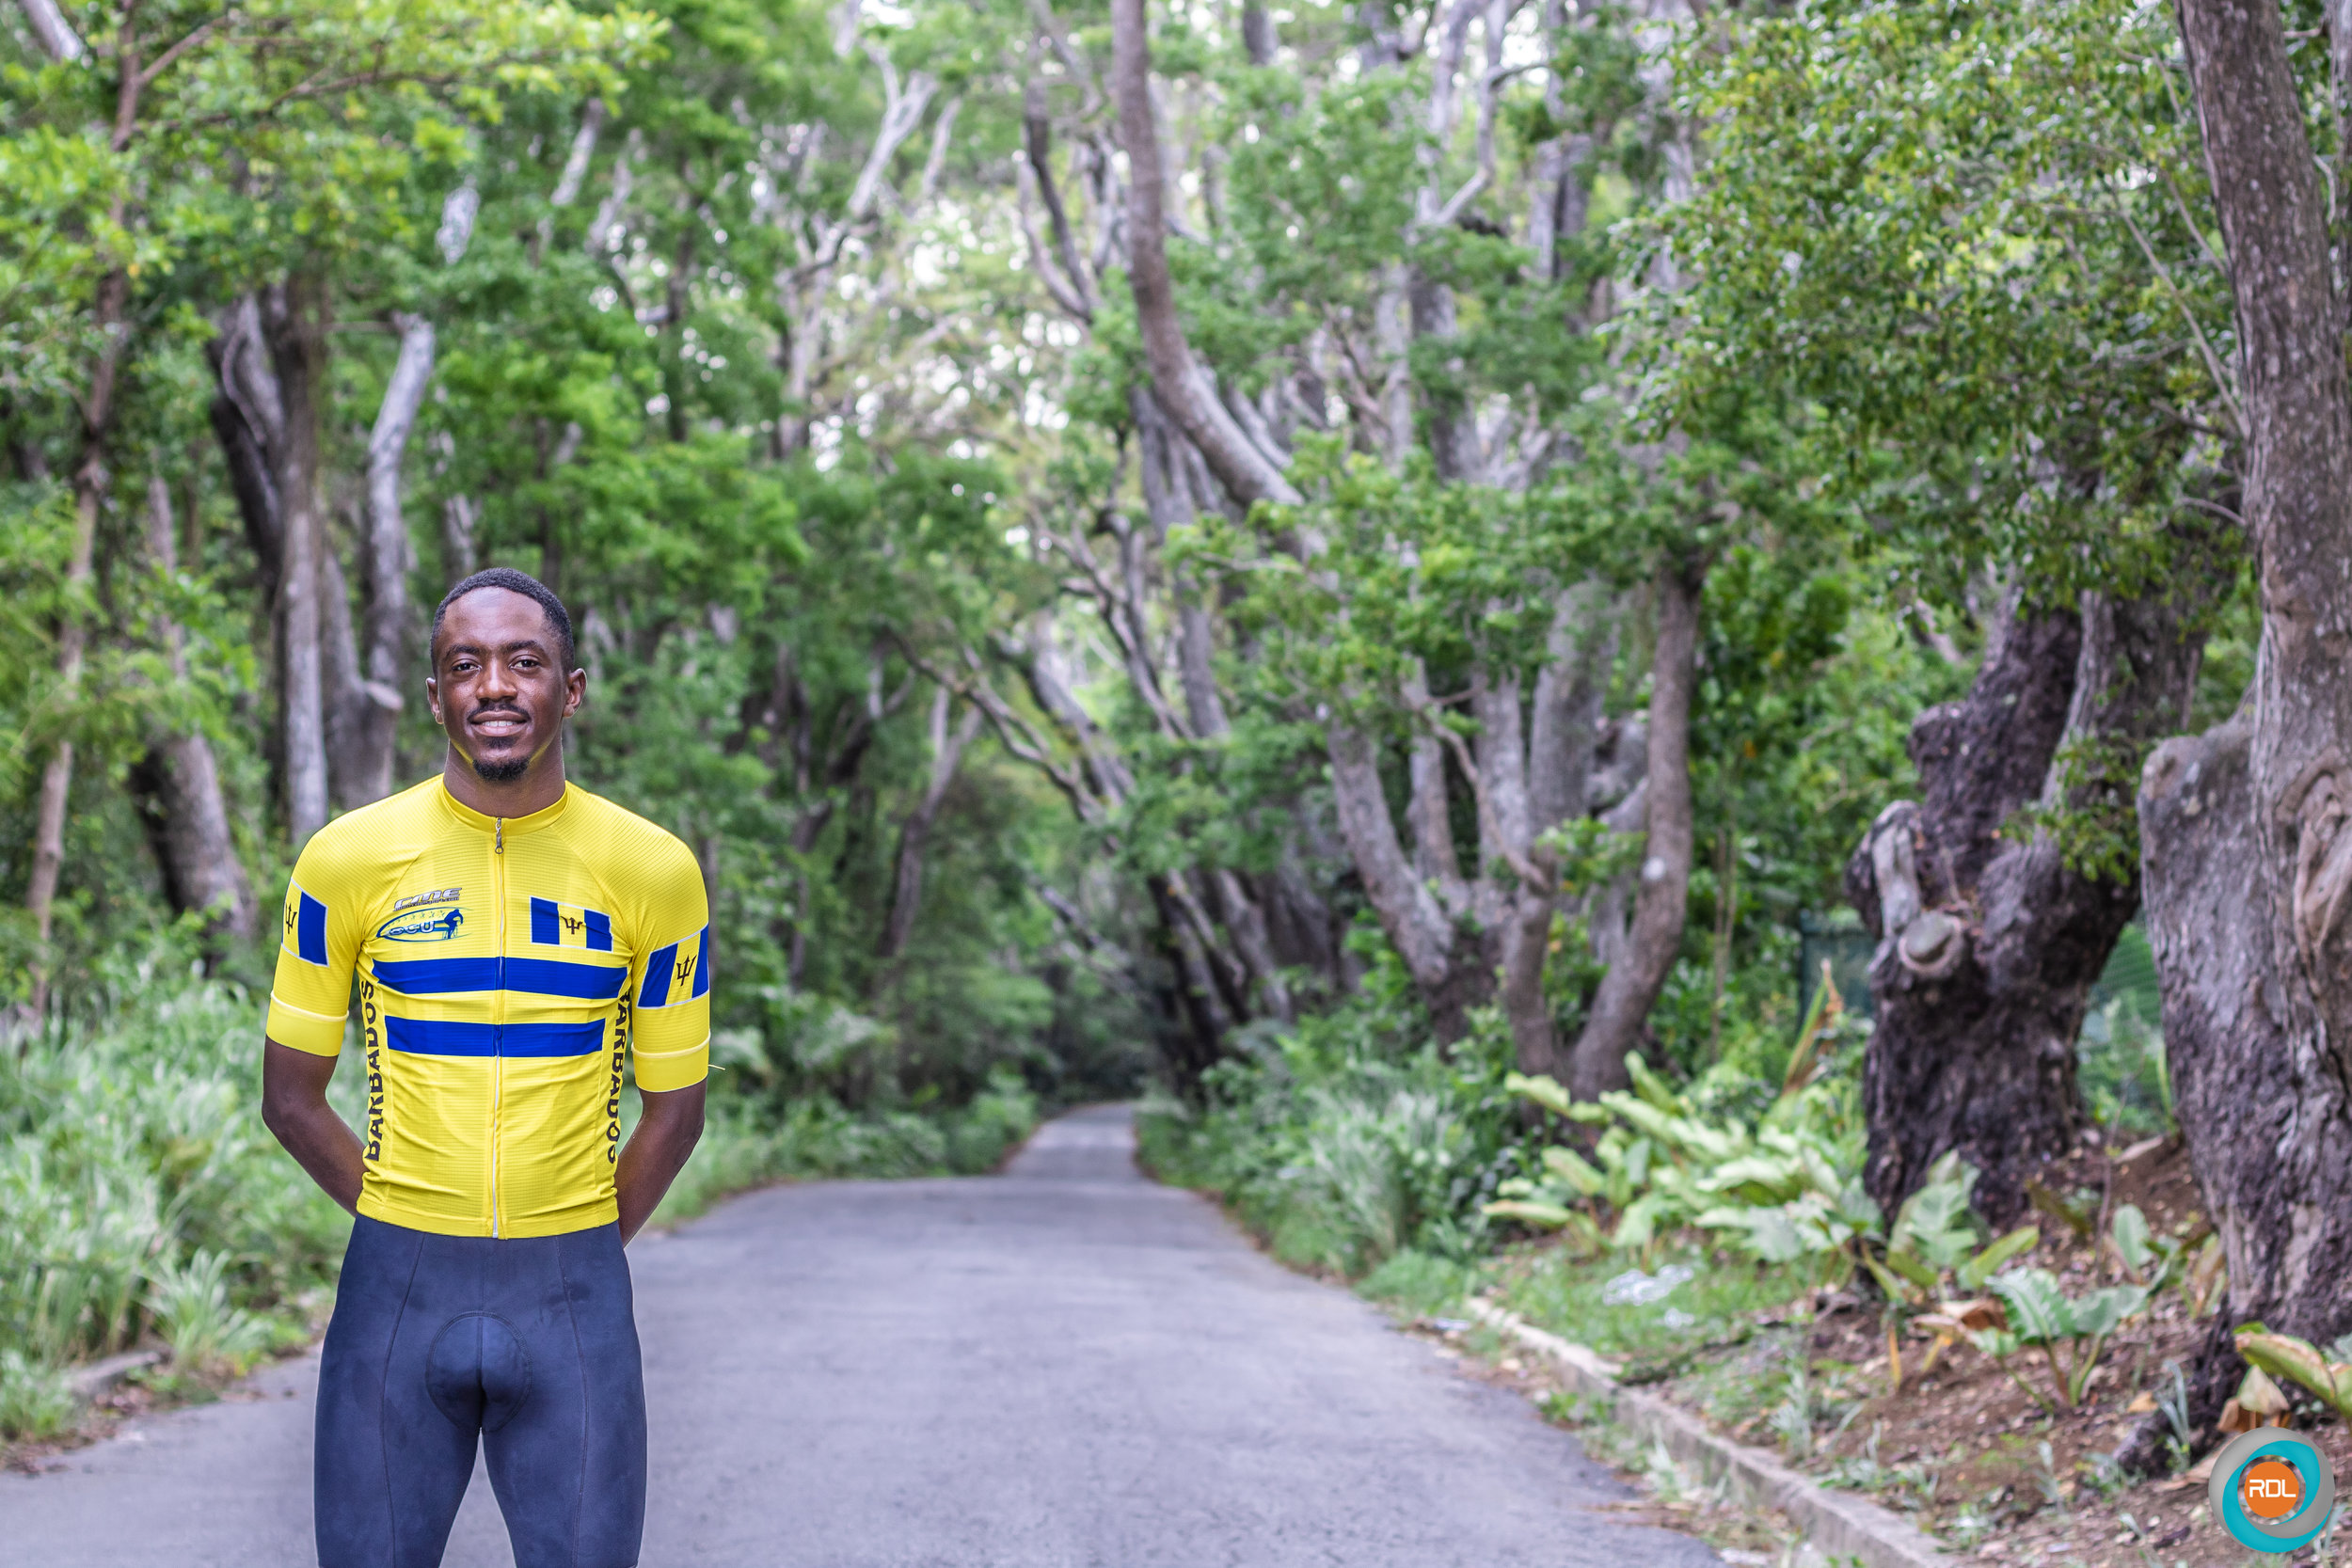 23-year-old Greg Vanderpool is the 2019 Barbados National Road Race champion.